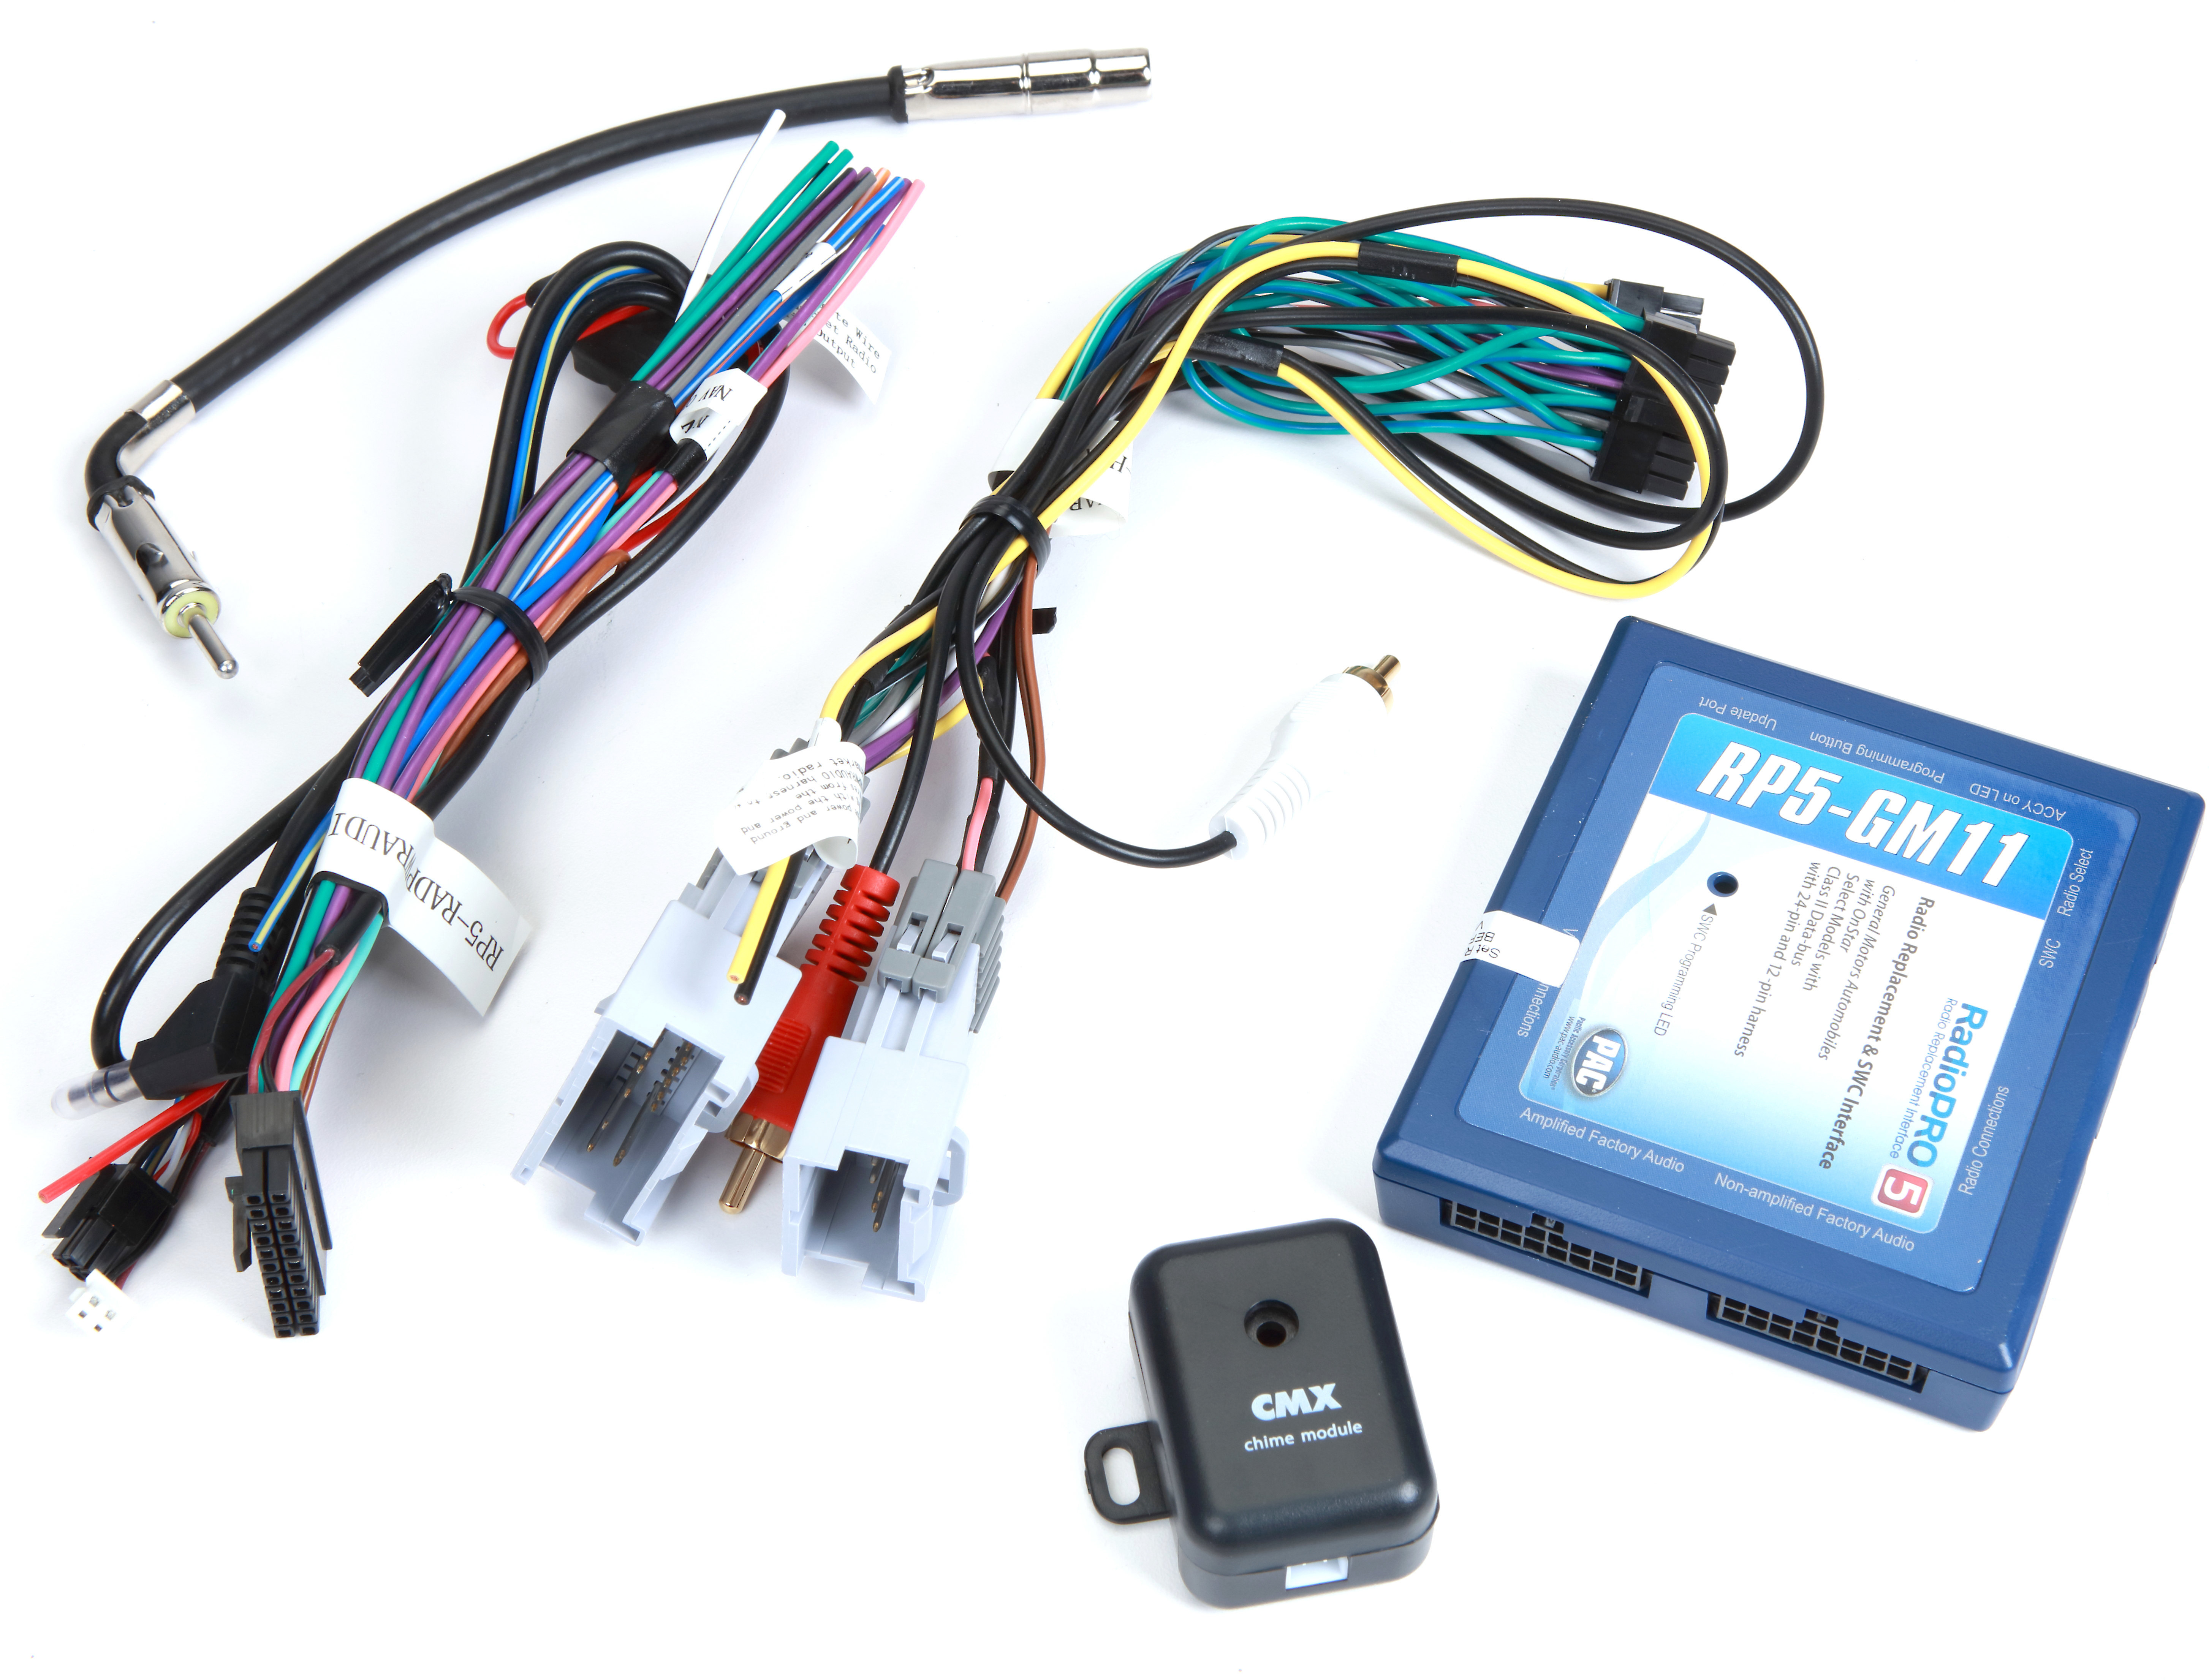 PAC RP5-GM11 Wiring Interface Connect a new car stereo and retain